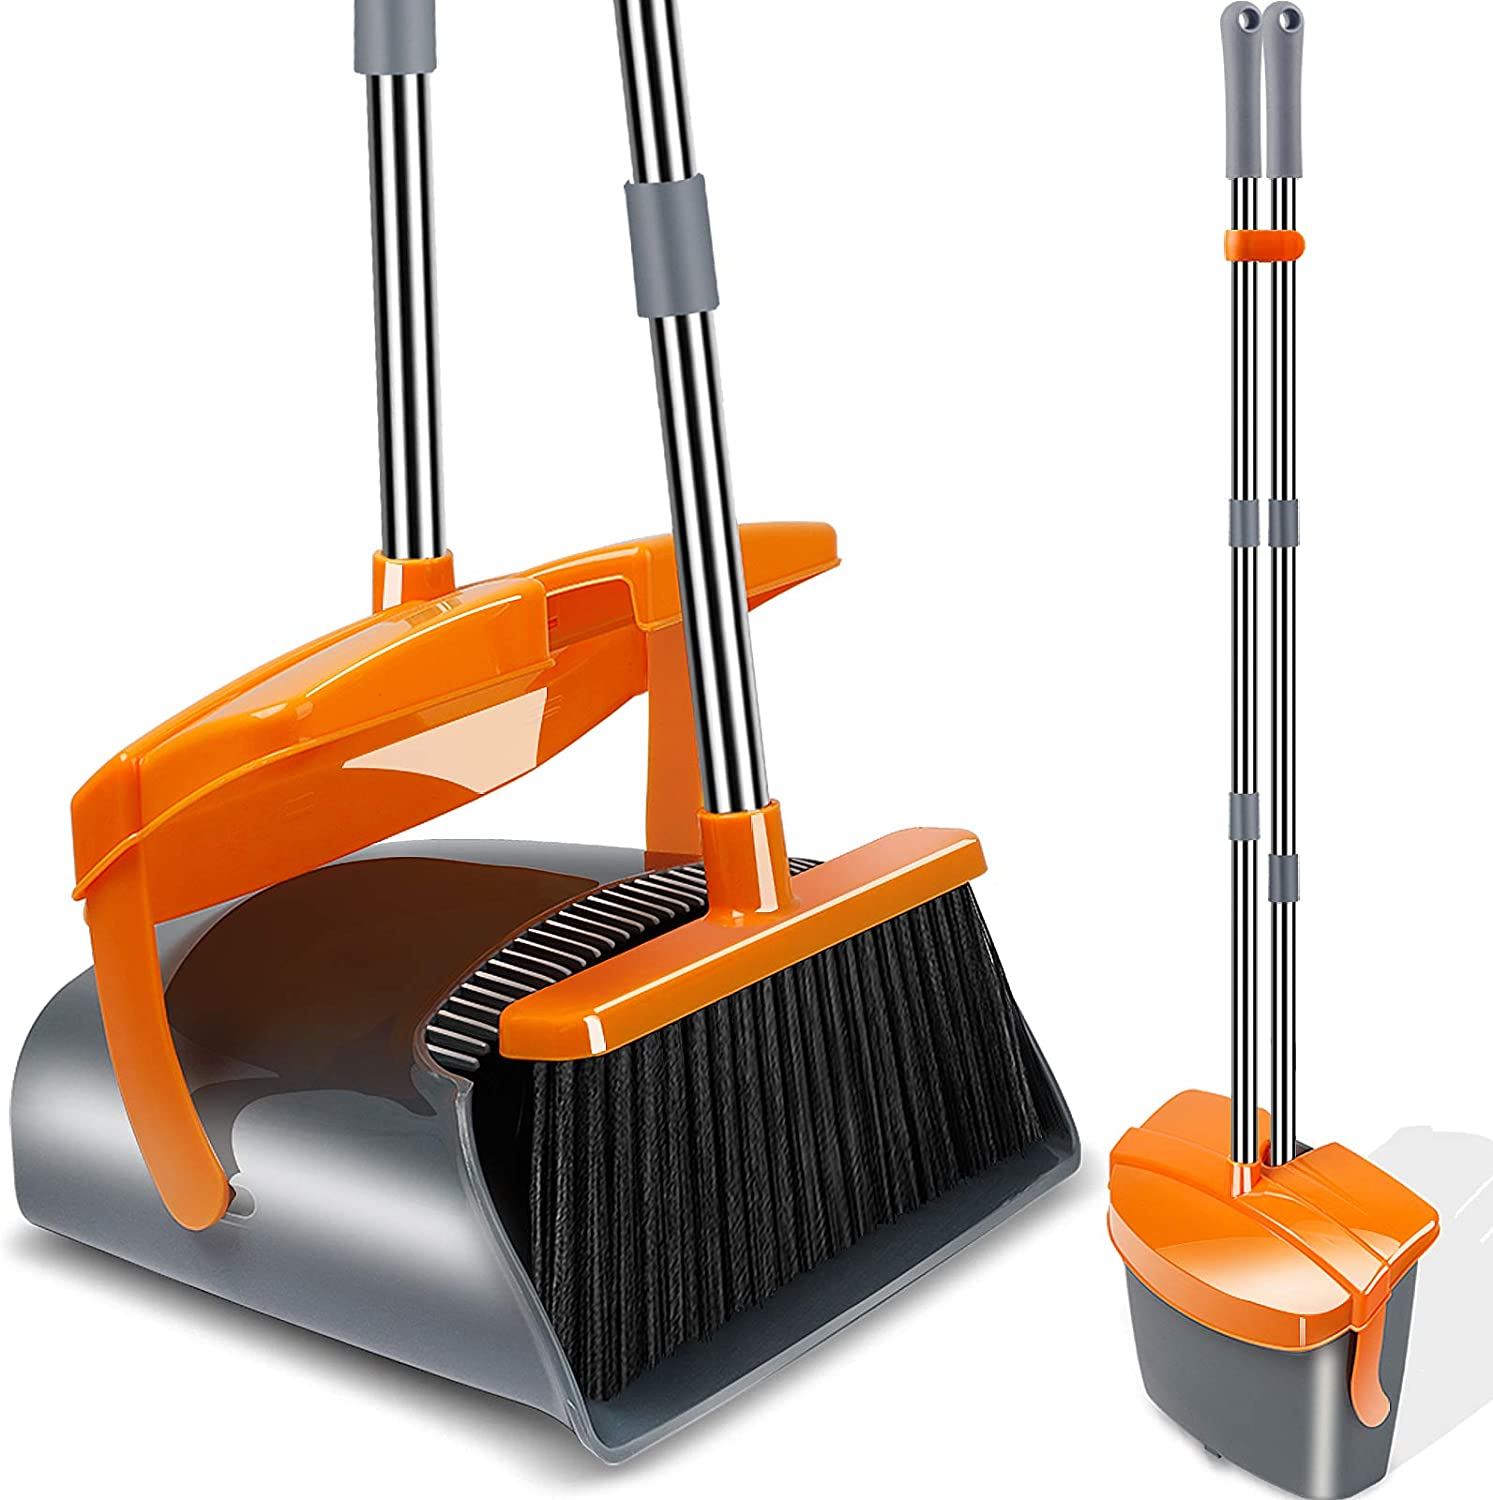 Kelamayi Dustpan and Broom Set,Stainless Long Handle Commercial Dust Pan Broom Combo Foldable Stand Dust Pan Sweep Set,Ideal for Pet Dog Hair Home Kitchen Office Cleaning: Home & Kitchen